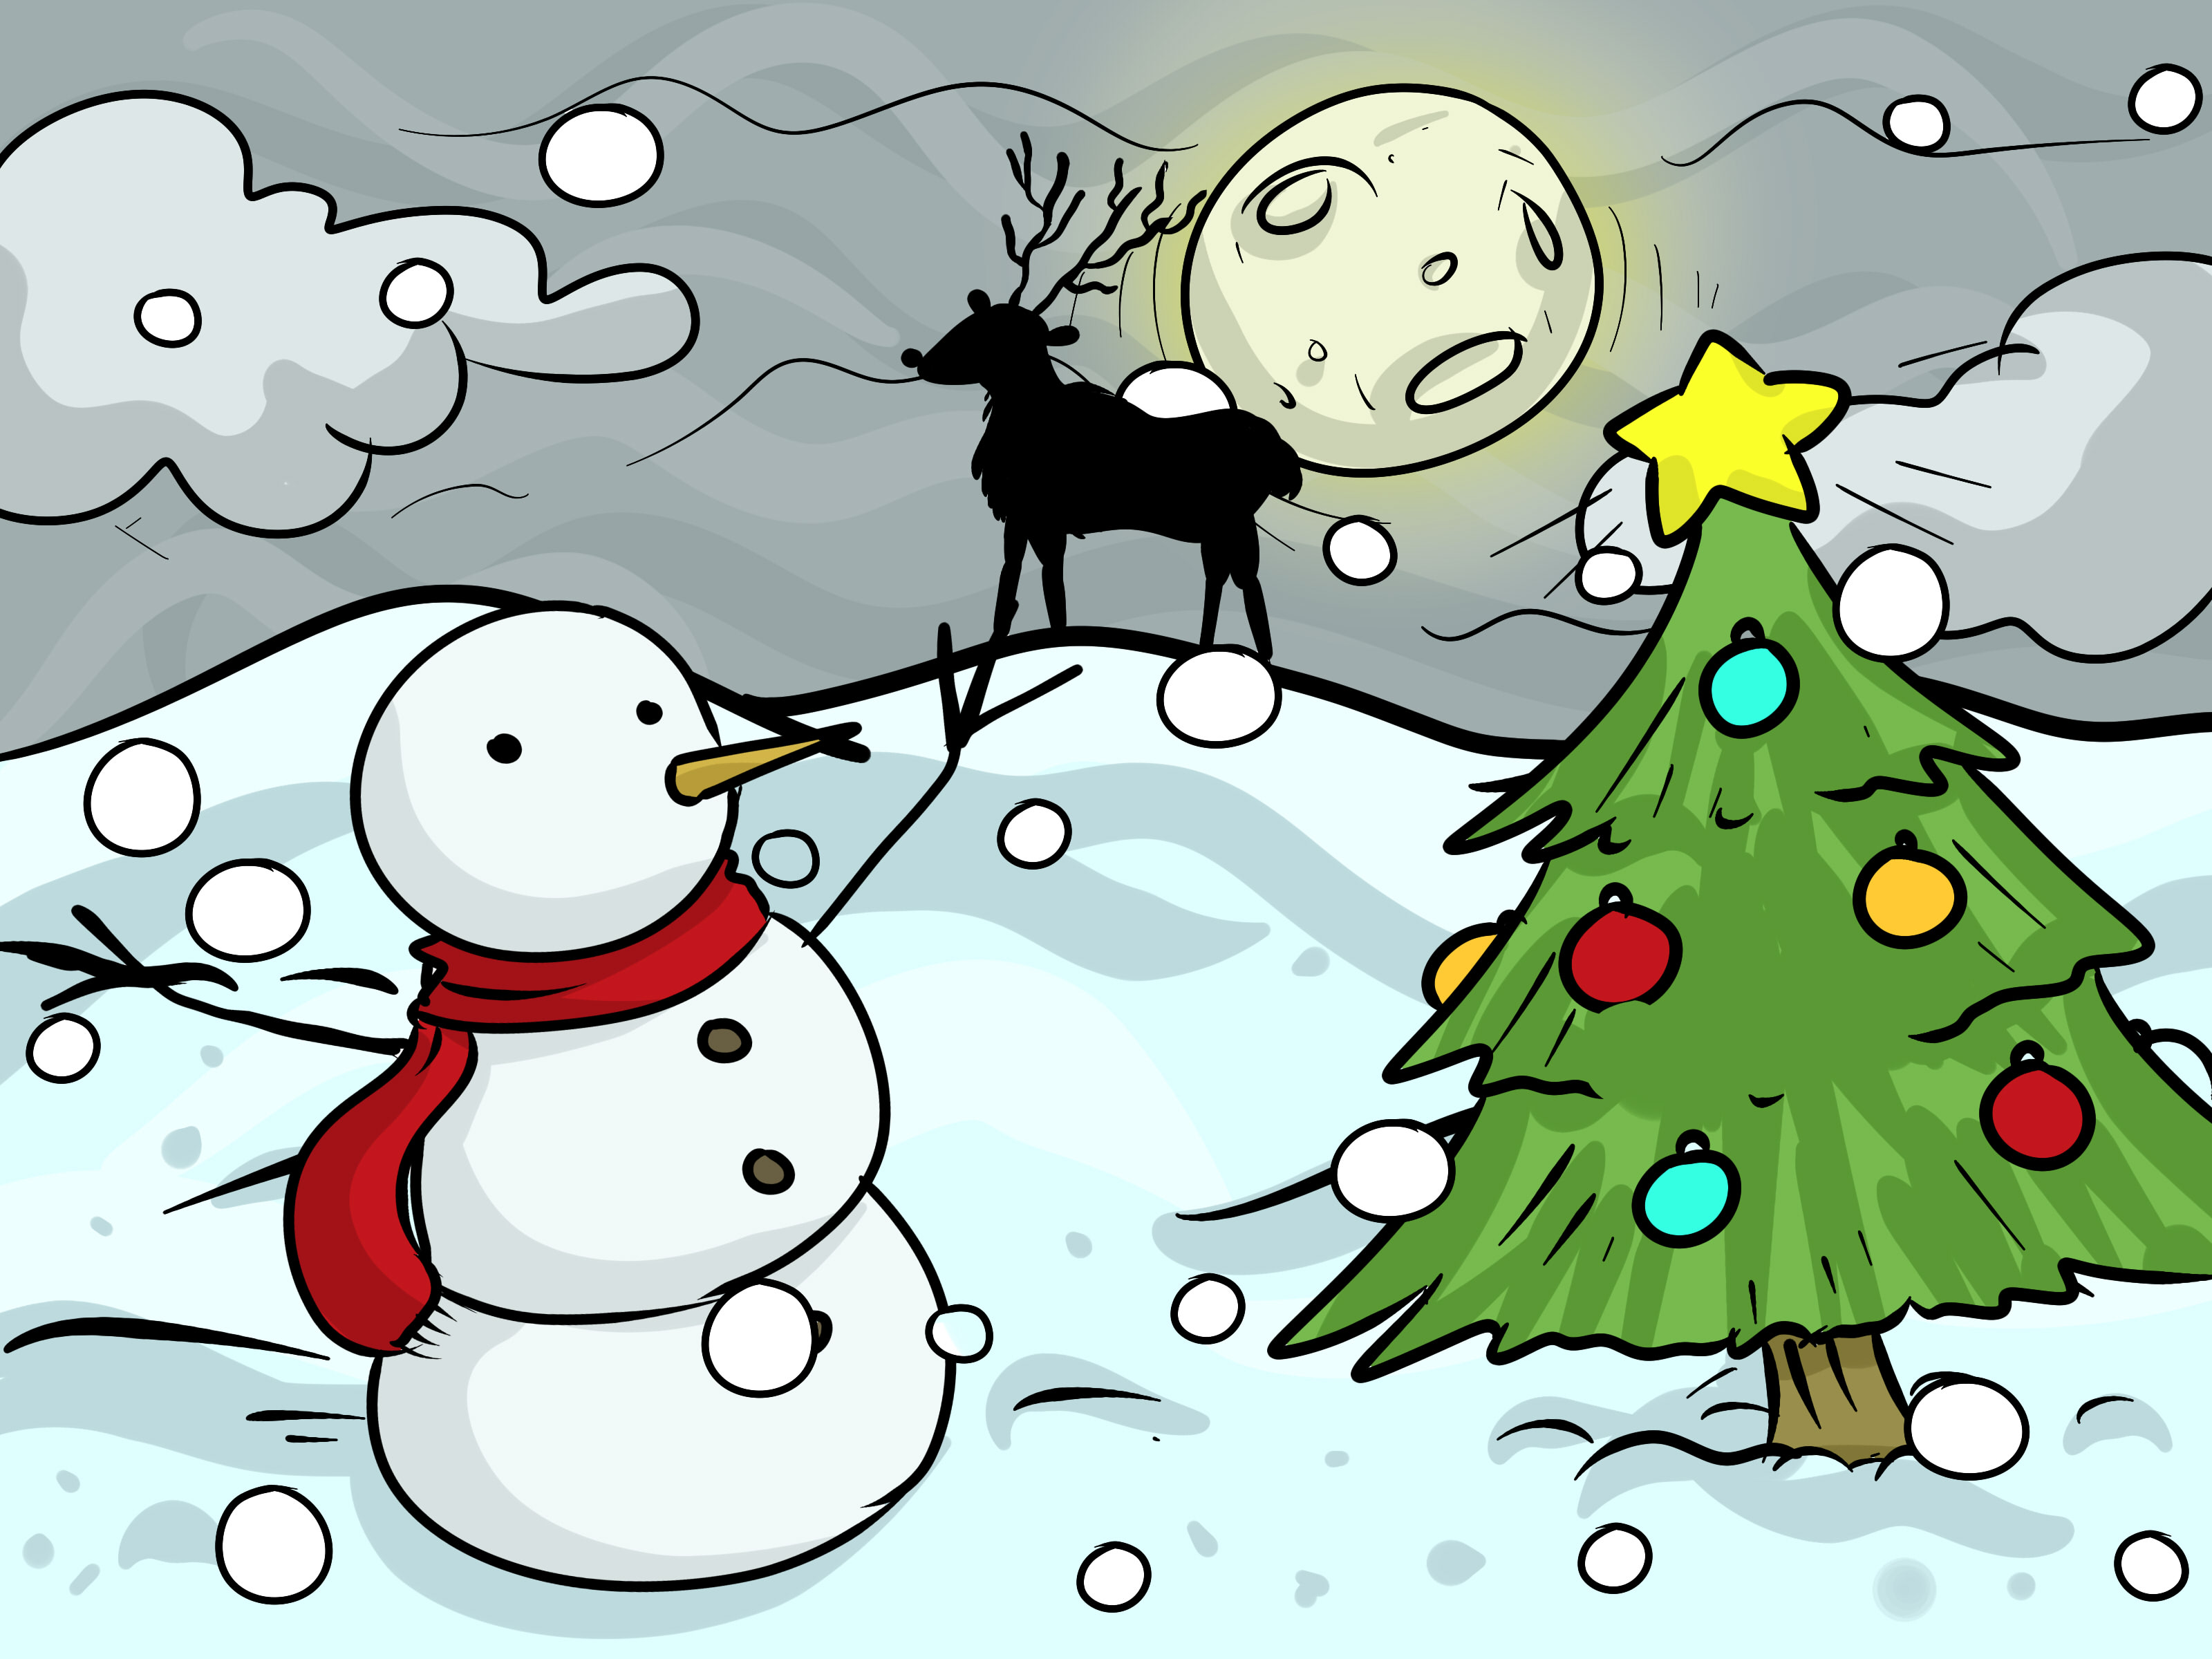 3200x2400 How to Draw a Christmas Landscape 12 Steps (with Pictures)